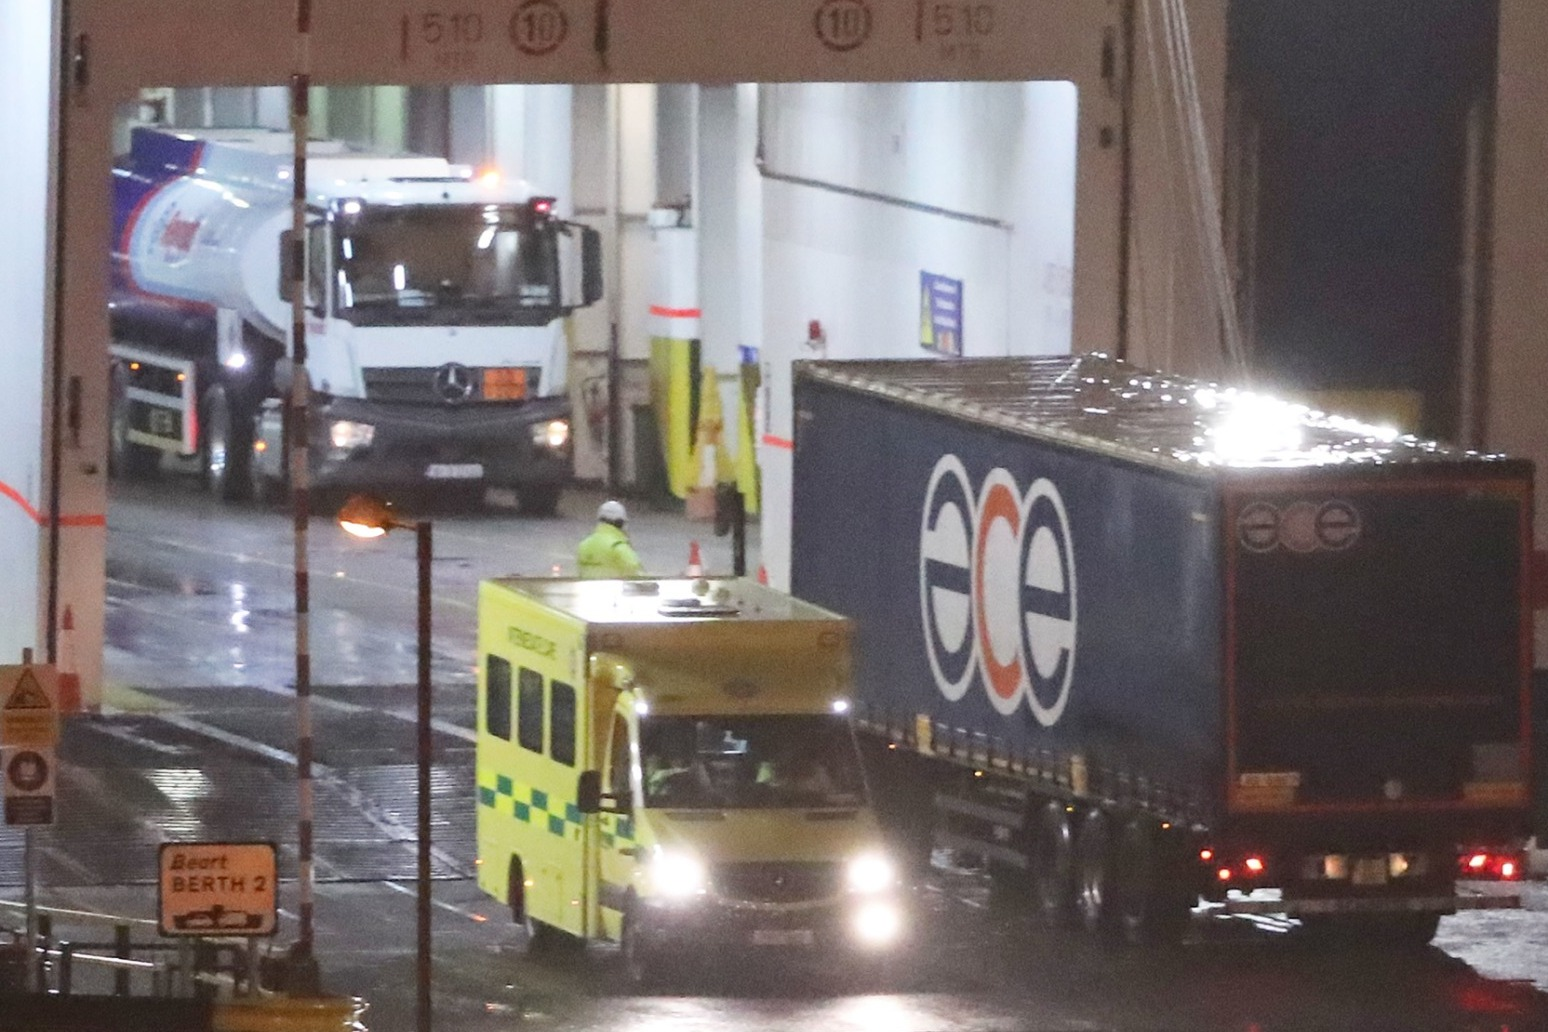 LORRY SEIZED AFTER 16 PEOPLE FOUND IN TRAILER ON FERRY